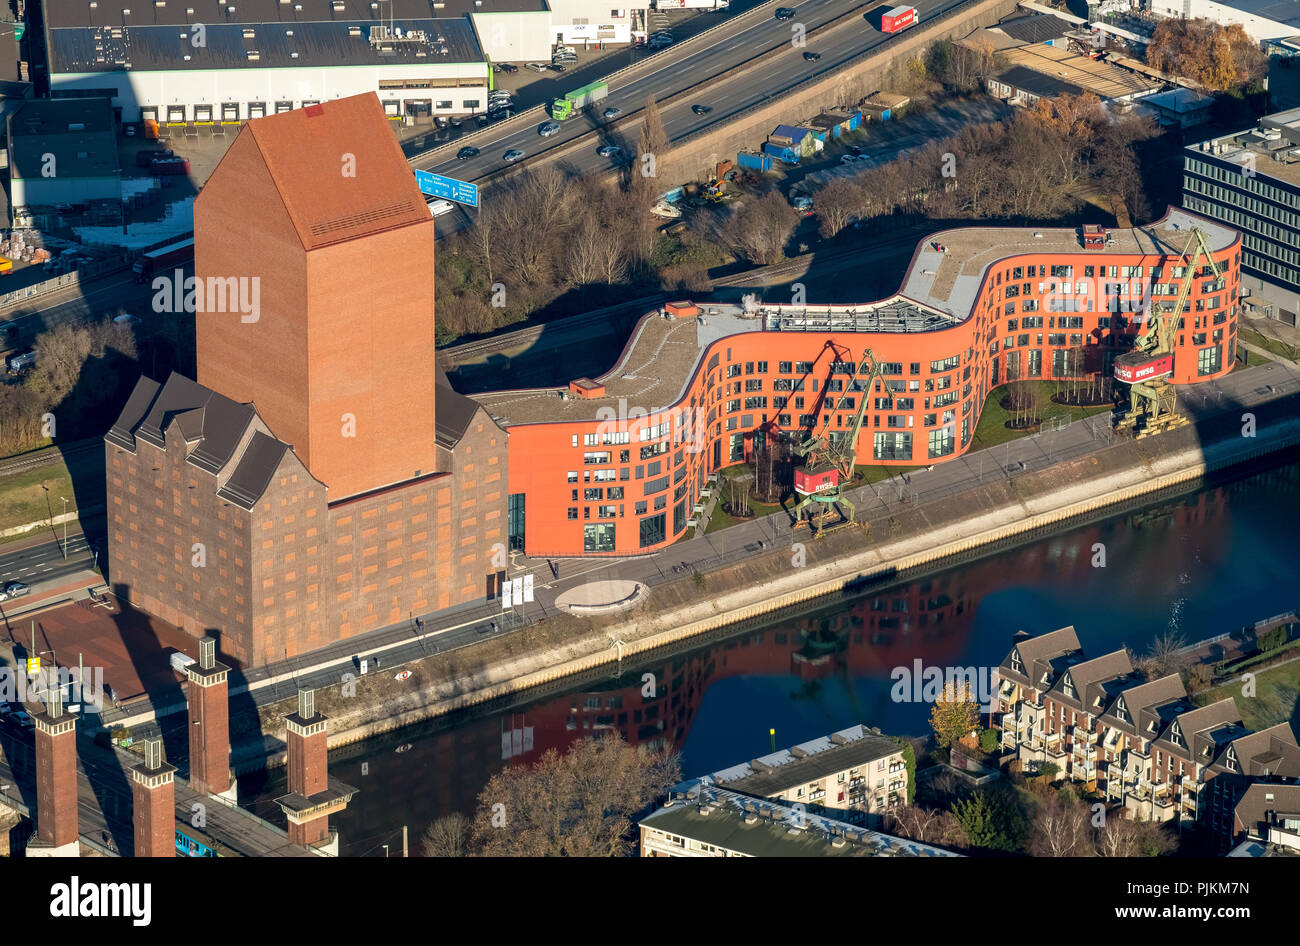 State archive NRW Department Rhineland at Innenhafen Duisburg, Architects Ortner & Ortner Baukunst, BLB Affair, Duisburg, Ruhr Area, North Rhine-Westphalia, Germany - Stock Image